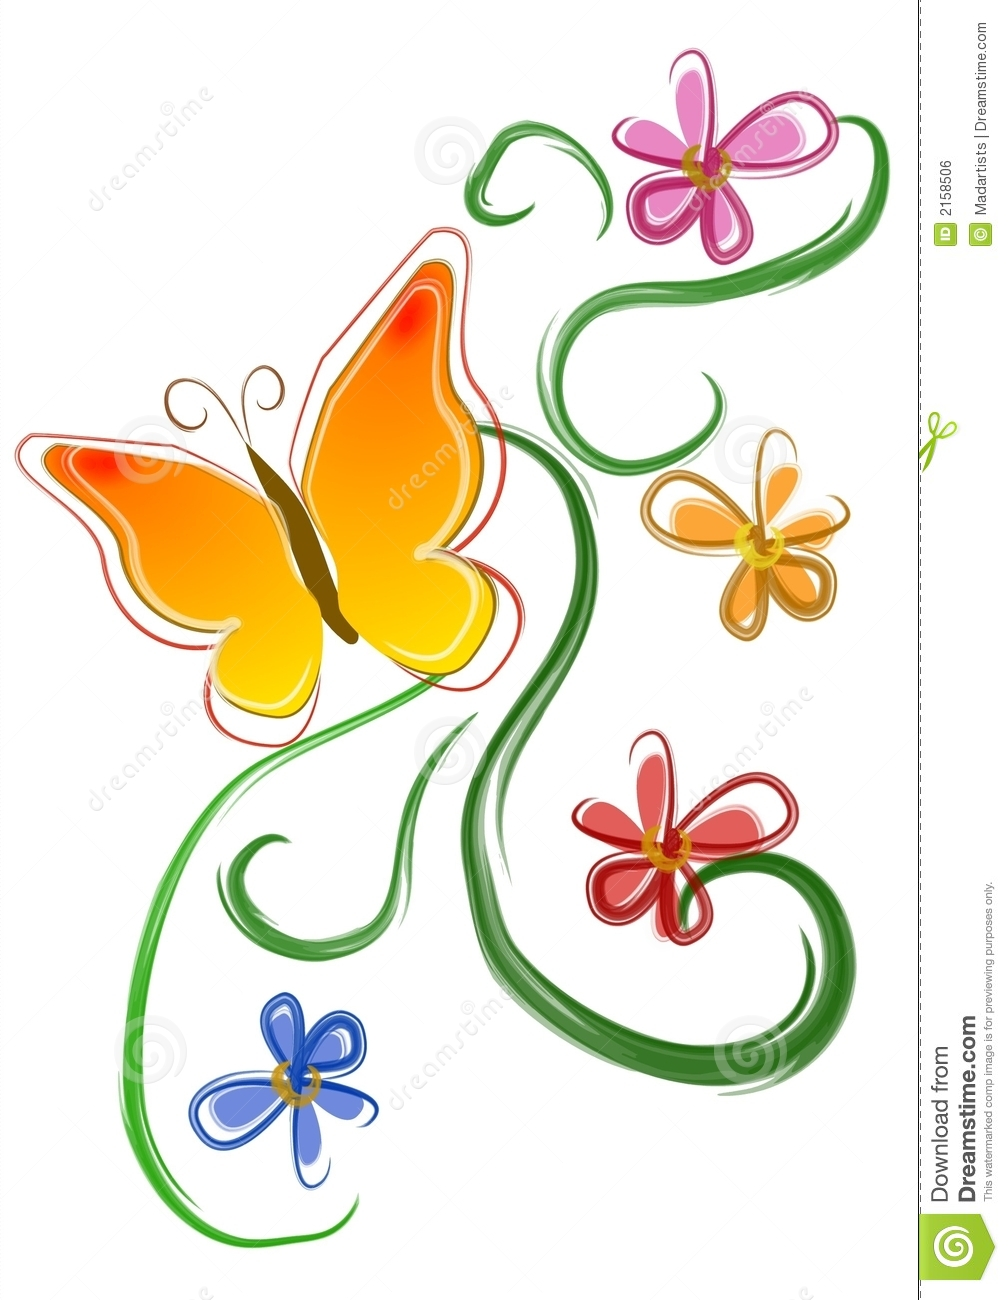 hight resolution of an isolated clip art design illustration of a yellow and orange butterfly with flowers